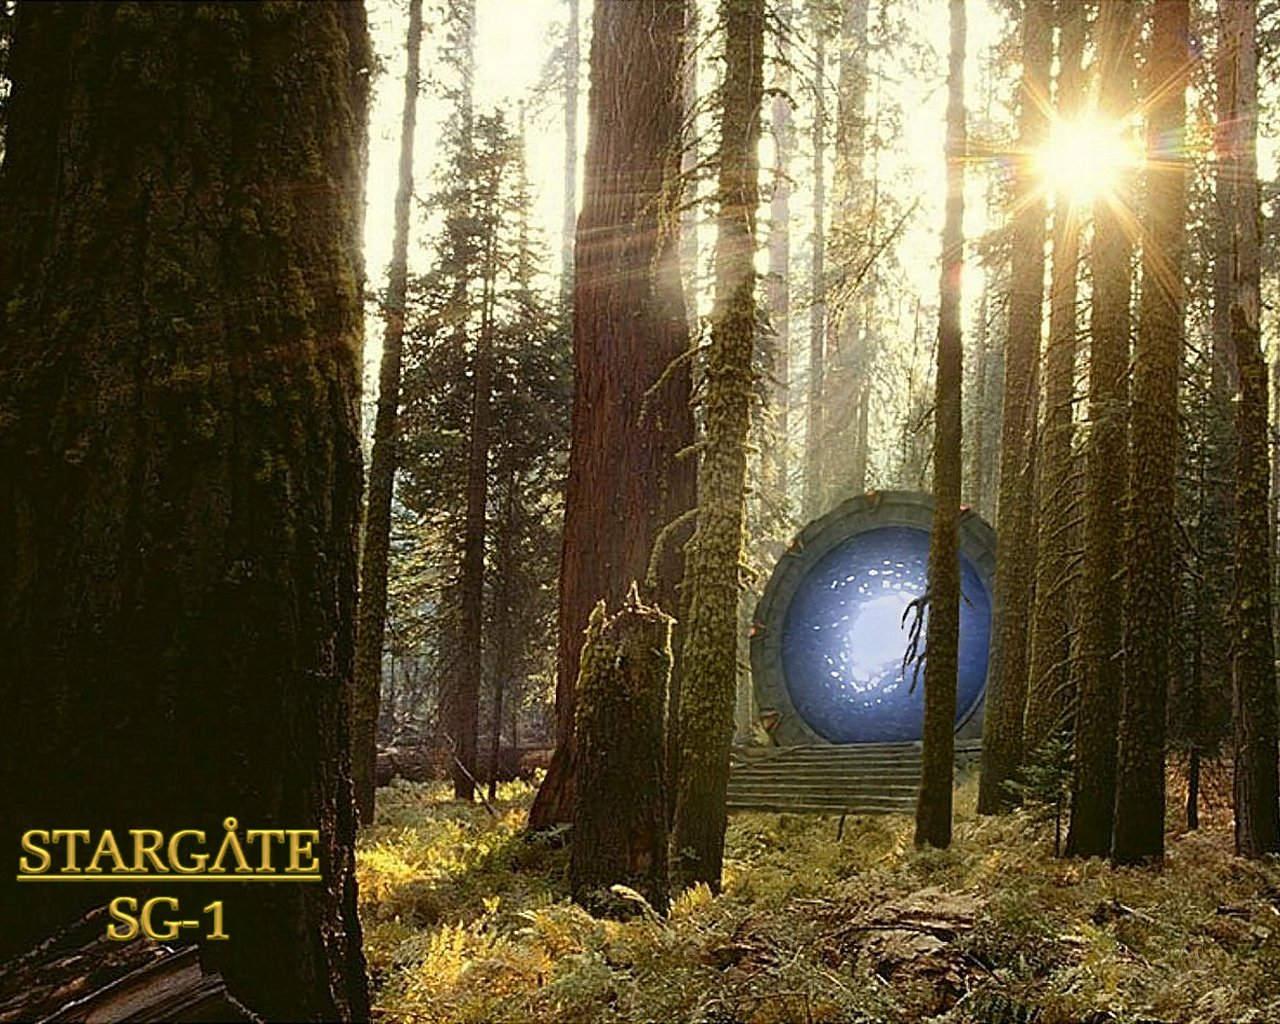 Download High quality Stargate Wallpaper Num 17 1280 x 1024 1280x1024